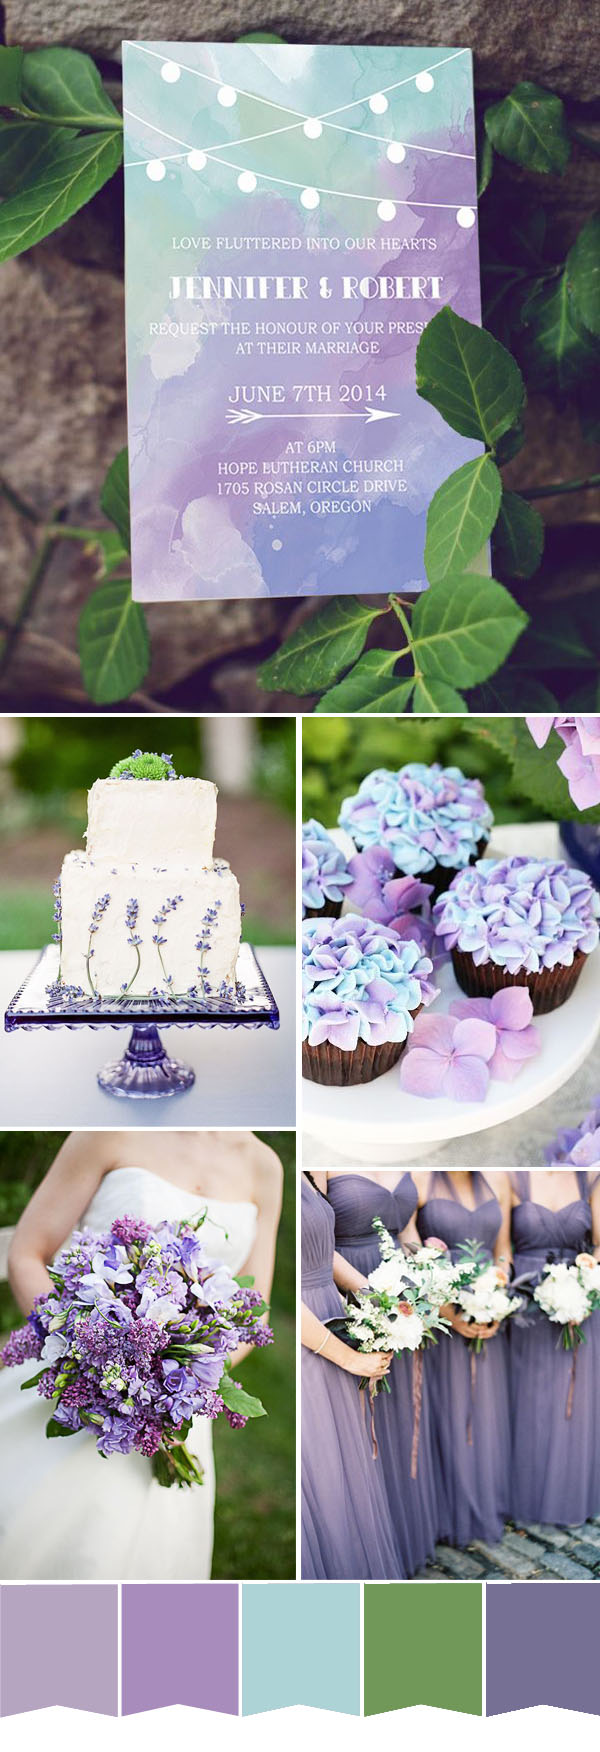 purple and mint spring weddding color ideas and wedding invitations